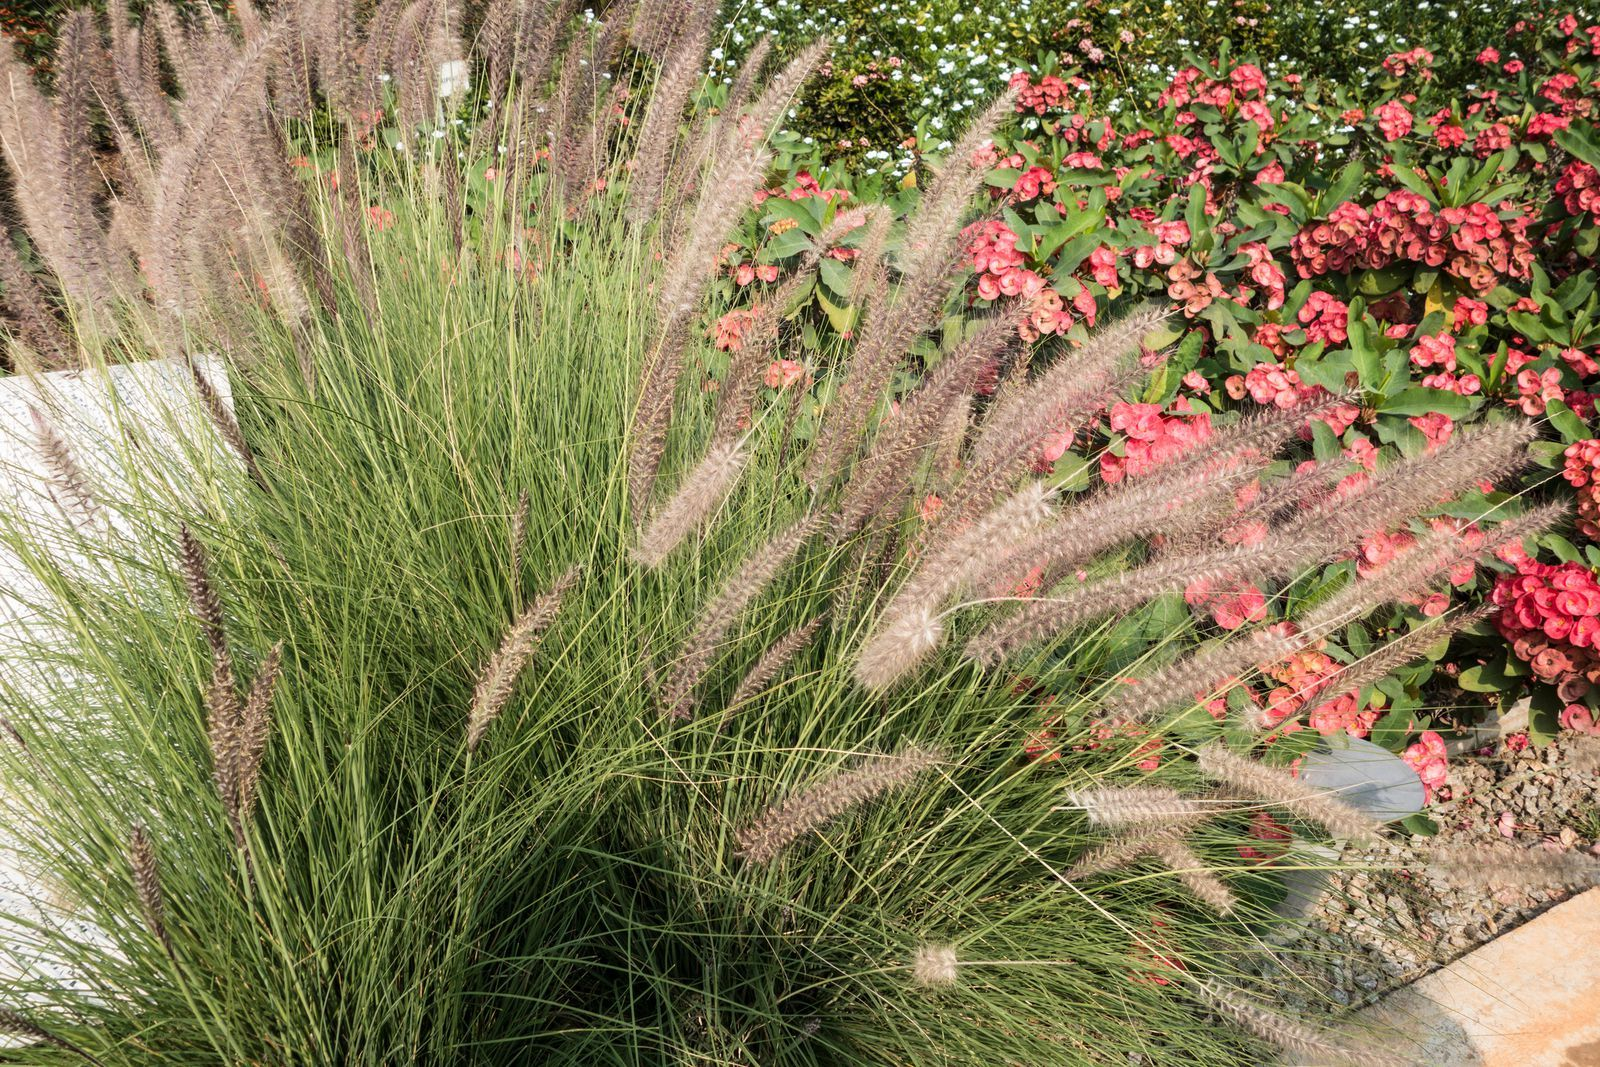 These Are The Best Ornamental Grasses For Your Garden Ornamental Grasses Shade Plants Shade Perennials